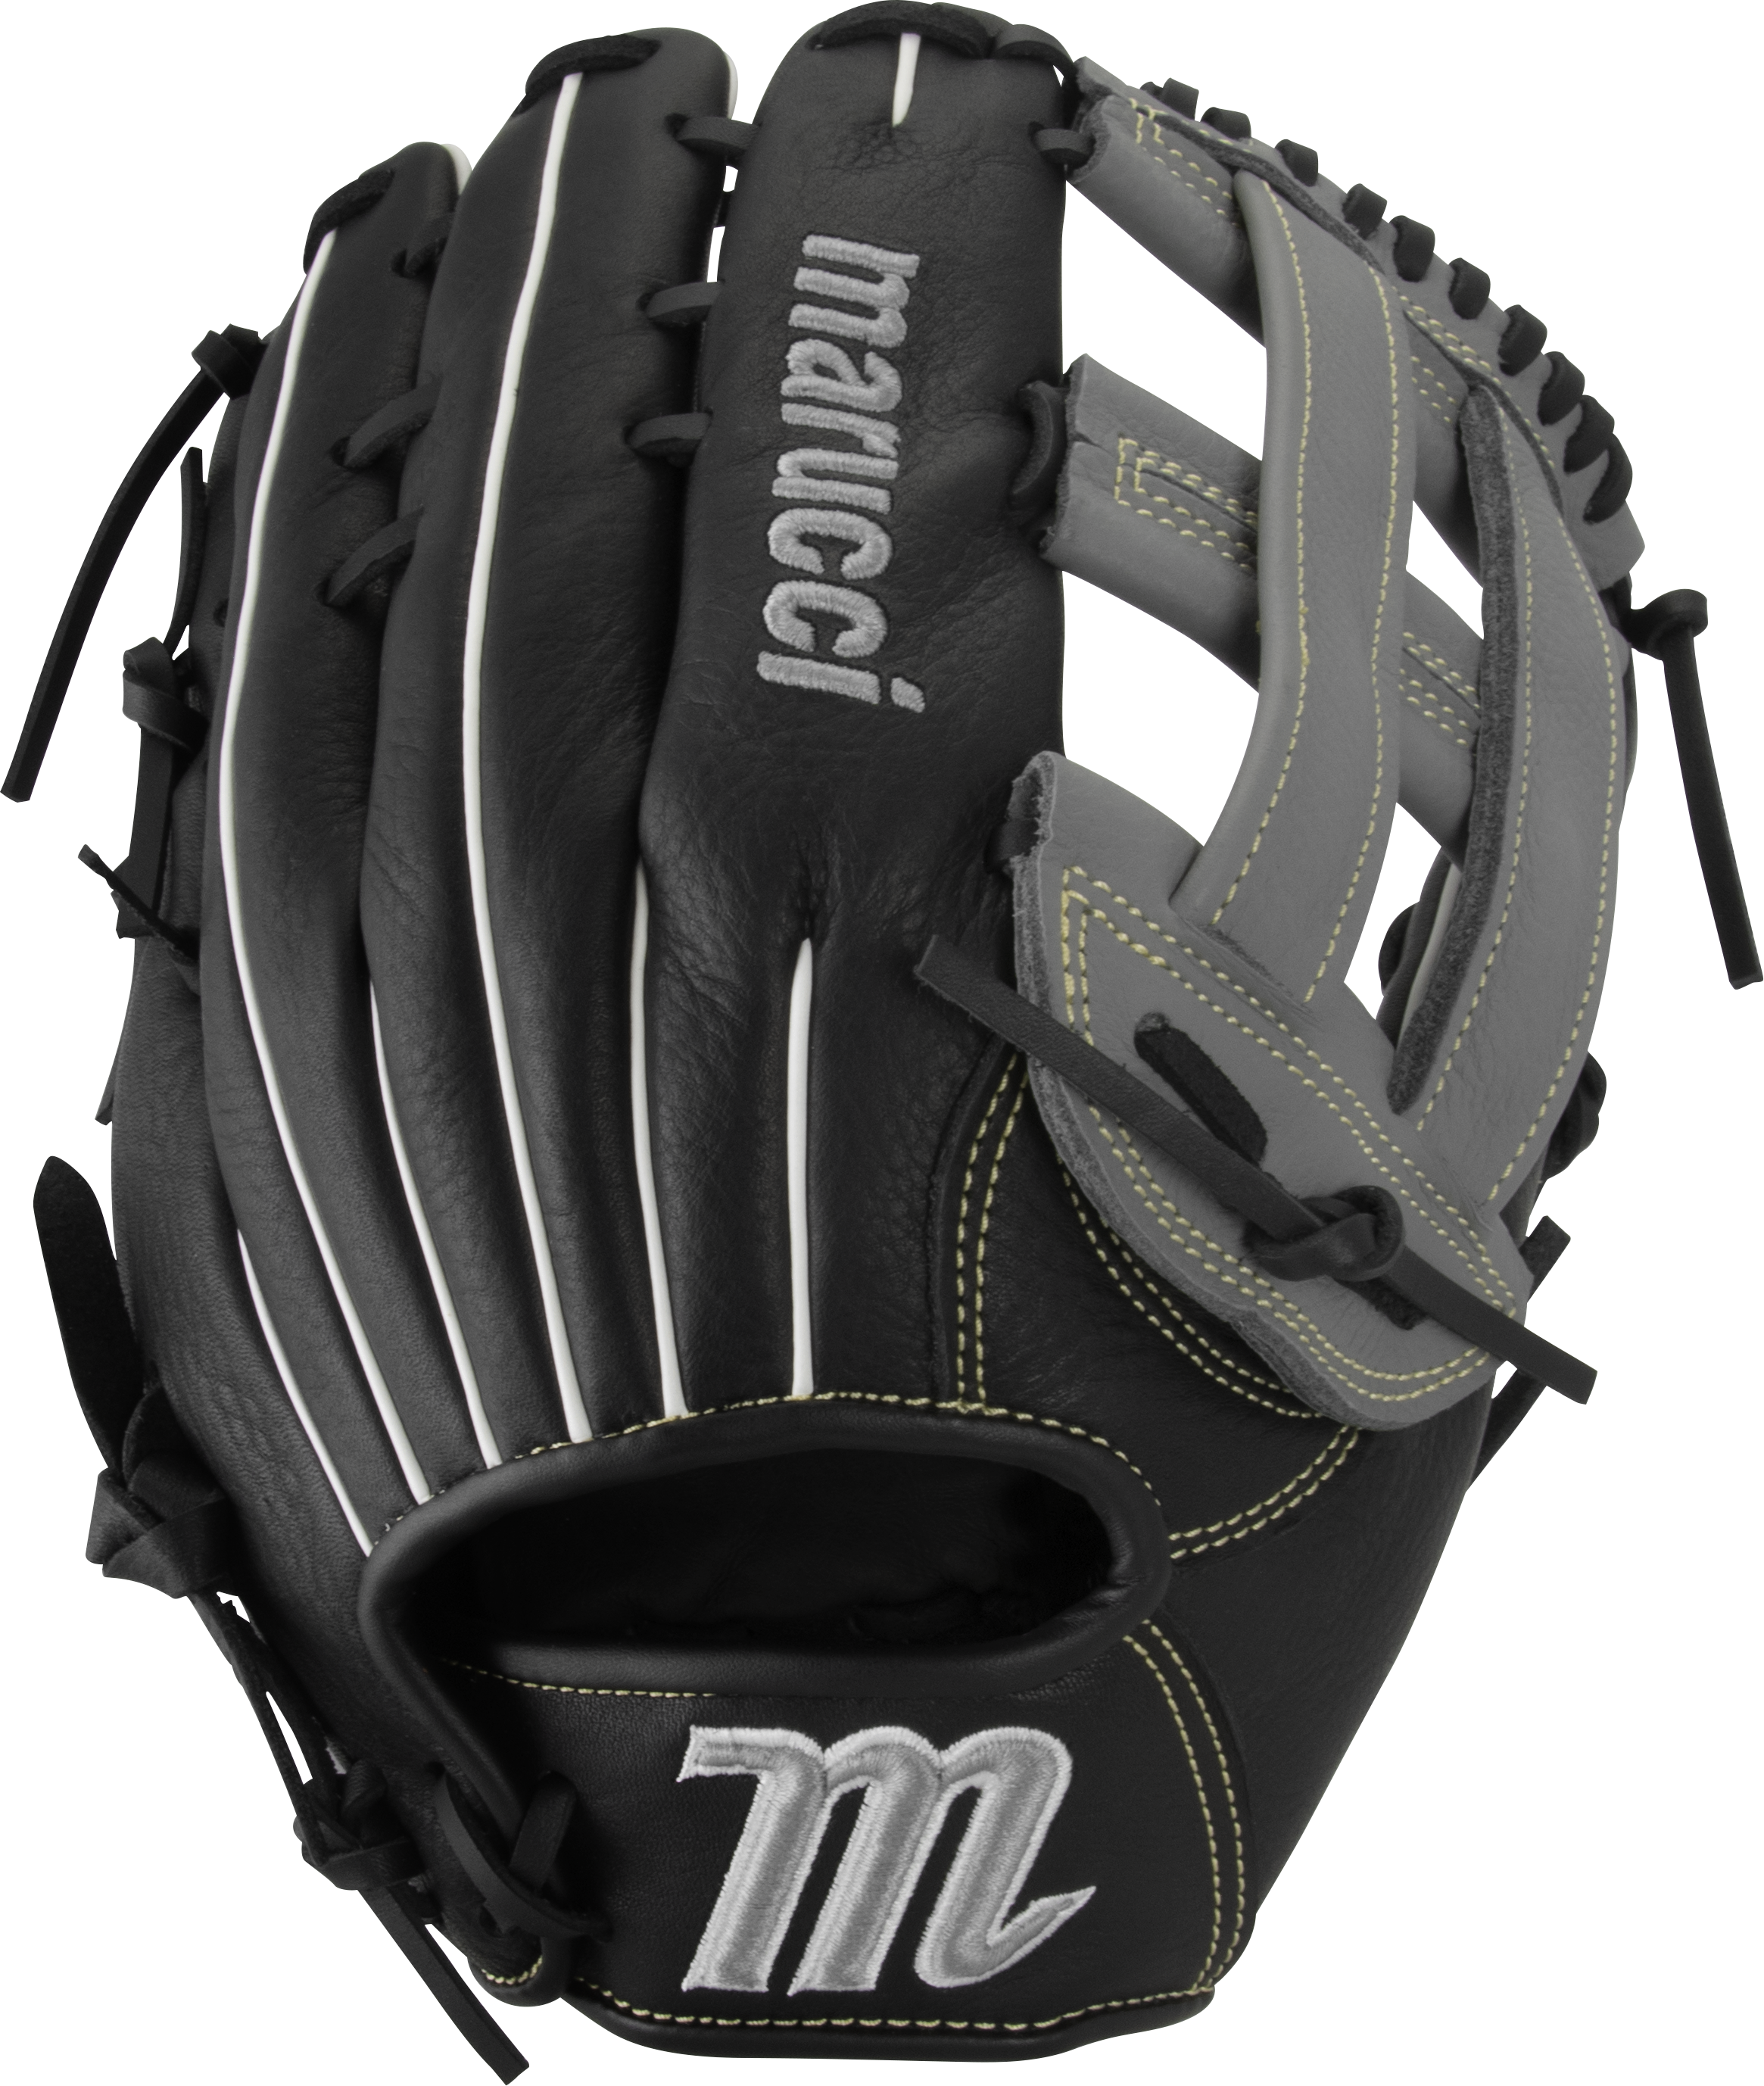 marucci-oxbow-ox1275-baseball-glove-12-75-h-web-right-hand-throw MFGOX1275-BKGY-RightHandThrow Marucci 849817099520 Full-grain cowhide leather shell Supple leather palm lining with added cushioning